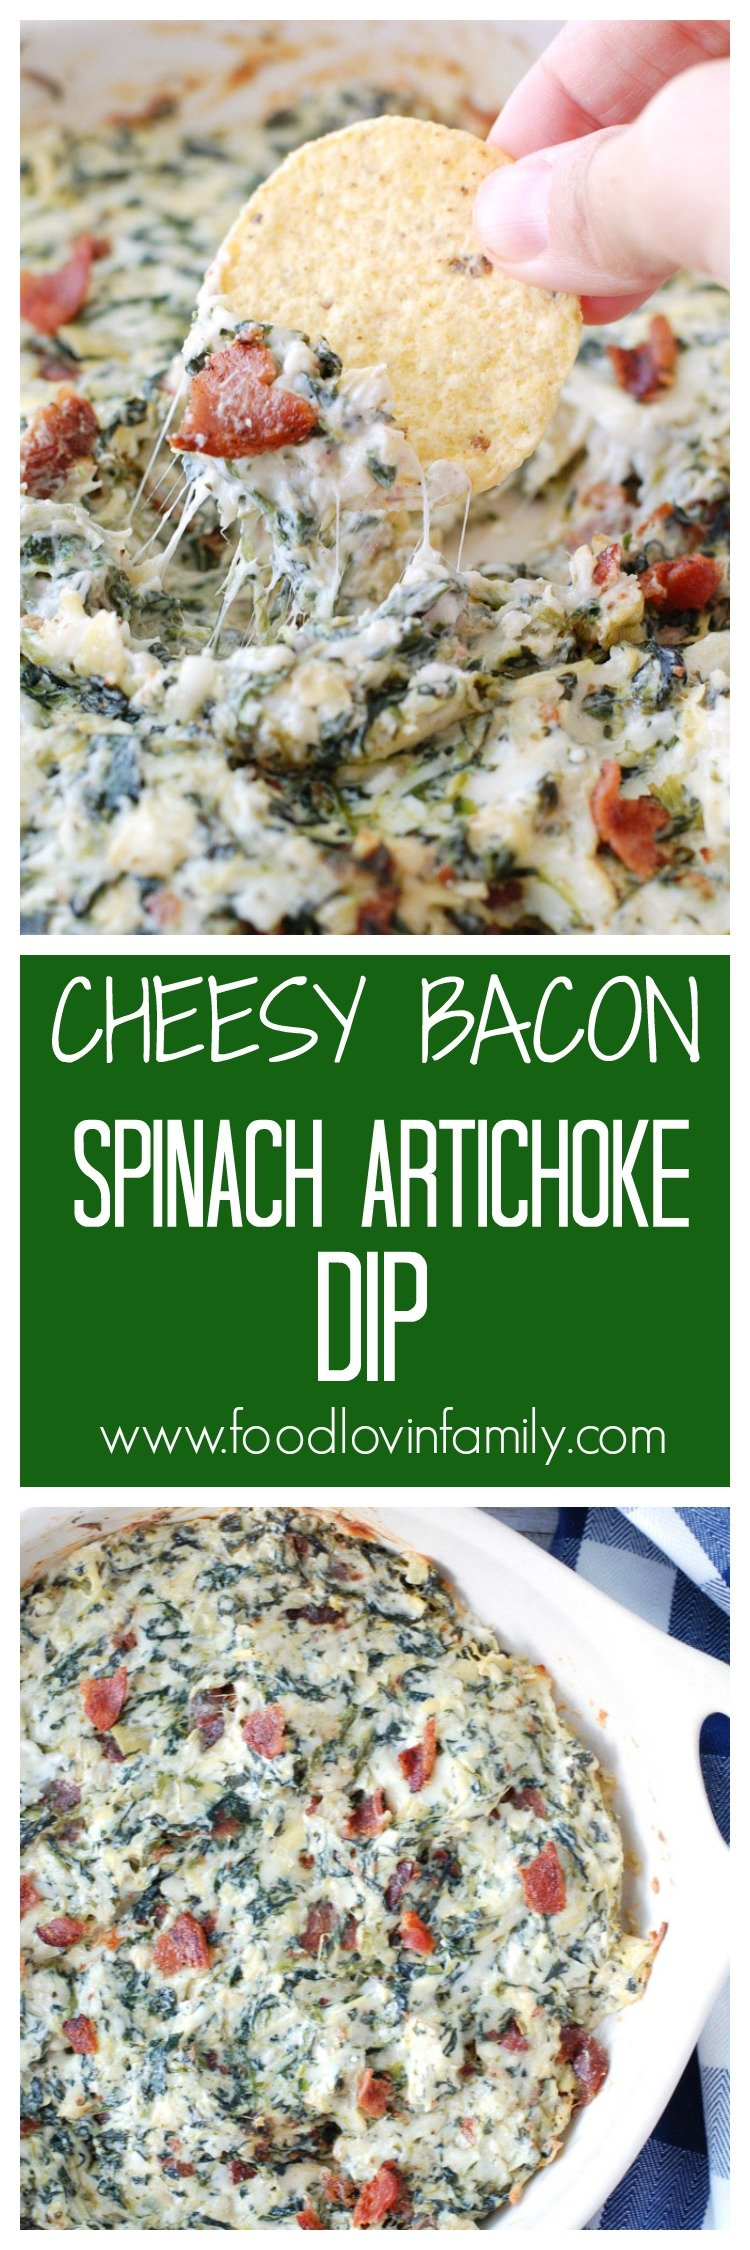 Cheesy Bacon Spinach Artichoke Dip is cheesy, creamy and so delicious!